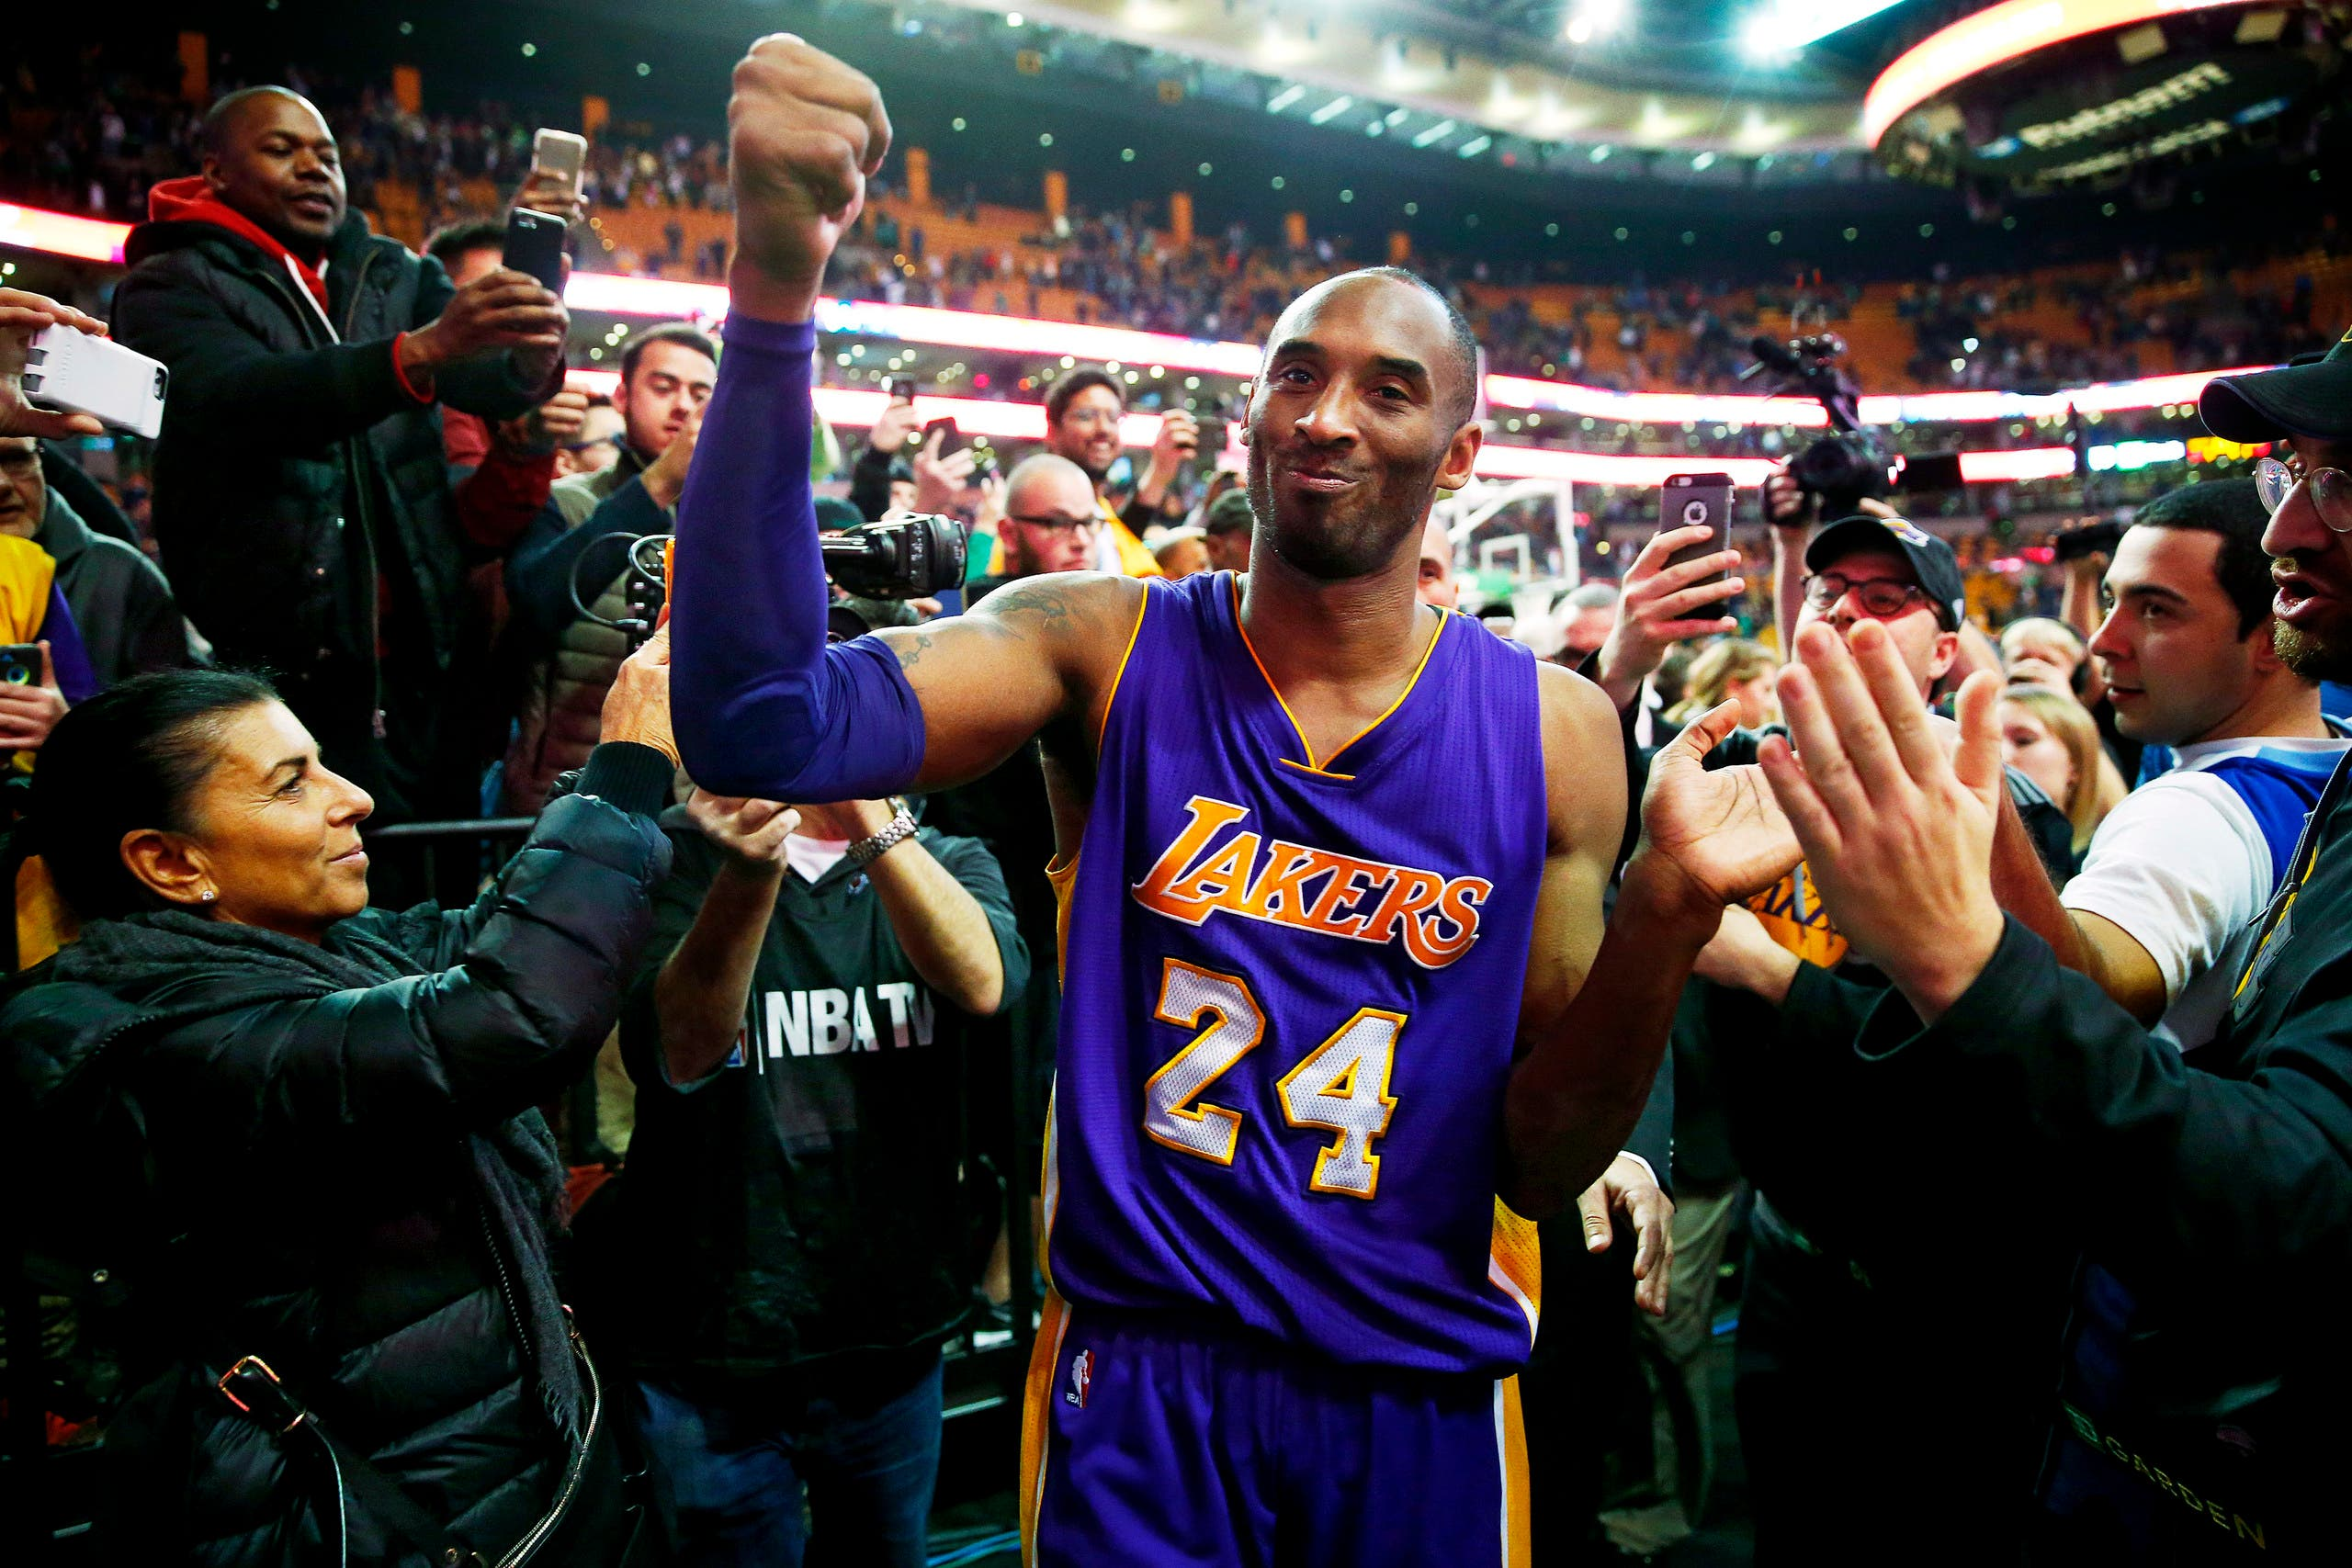 Kobe Bryant acknowledges the crowd as he leaves the court after their 112-104 win over the Boston Celtics in his final regular season NBA basketball game in Boston Wednesday, Dec. 30, 2015. (AP)